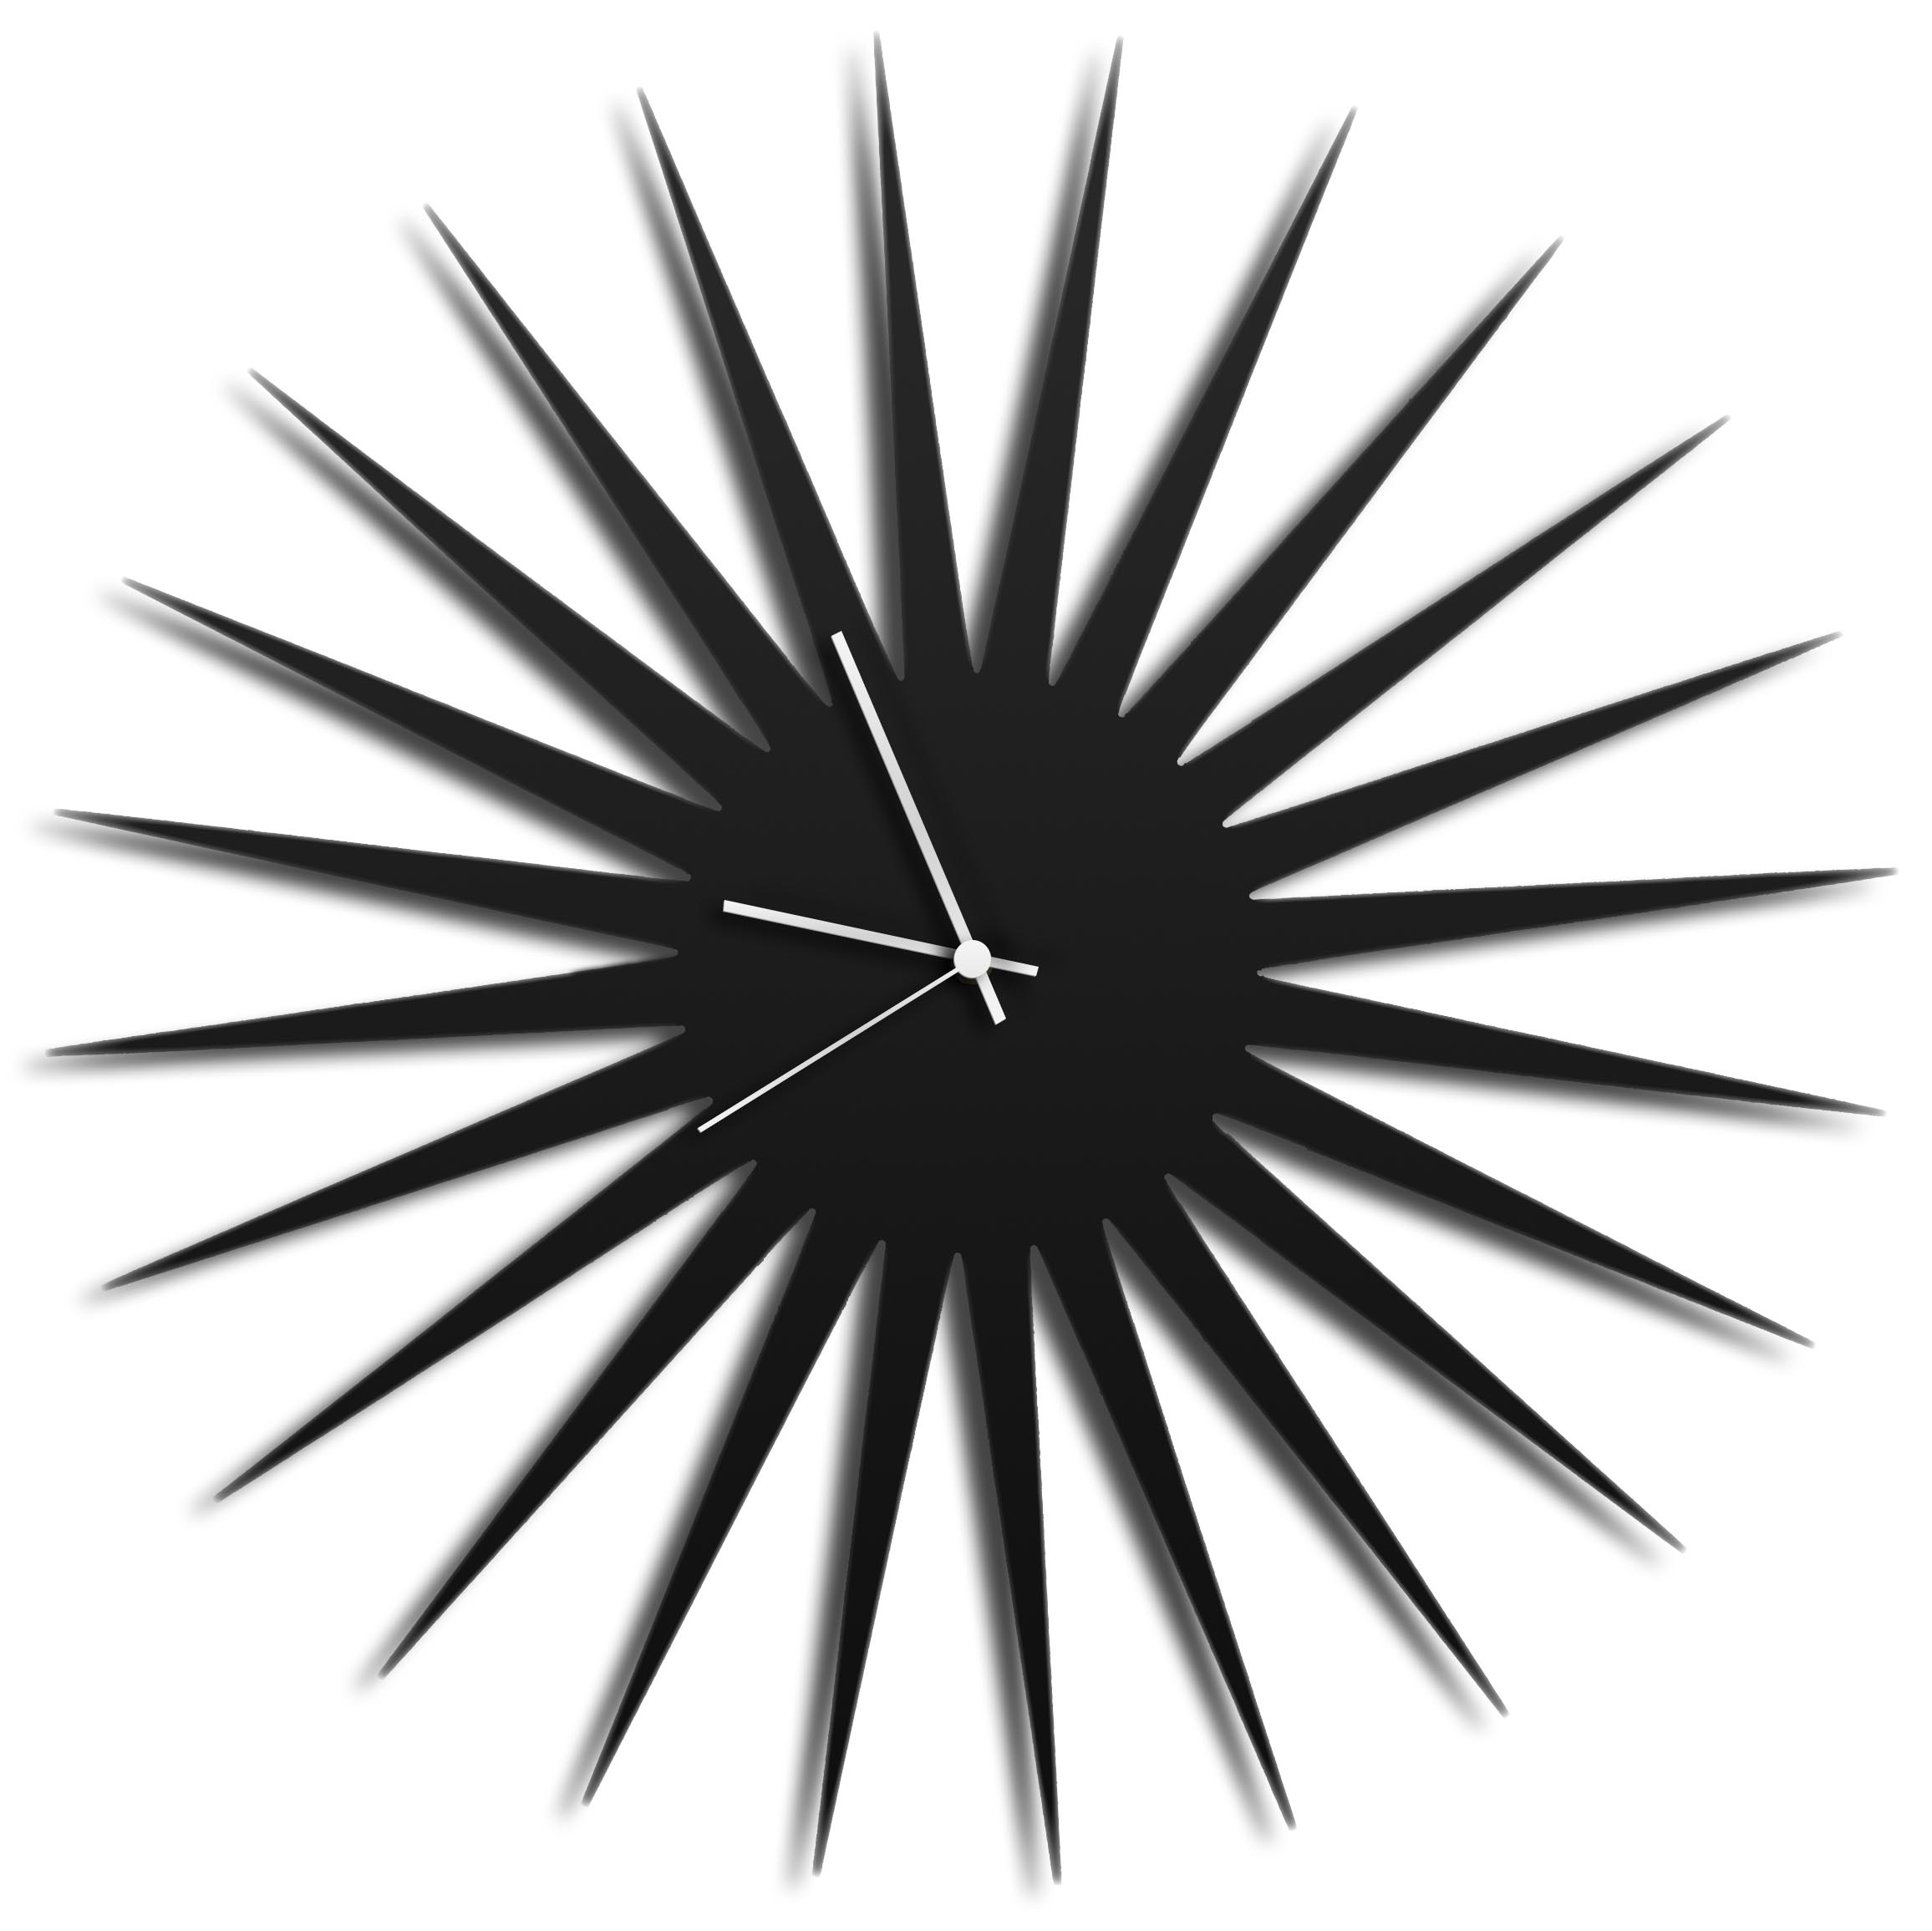 MCM Starburst Clock   Black By Adam Schwoeppe   Midcentury Modern Wall Clock